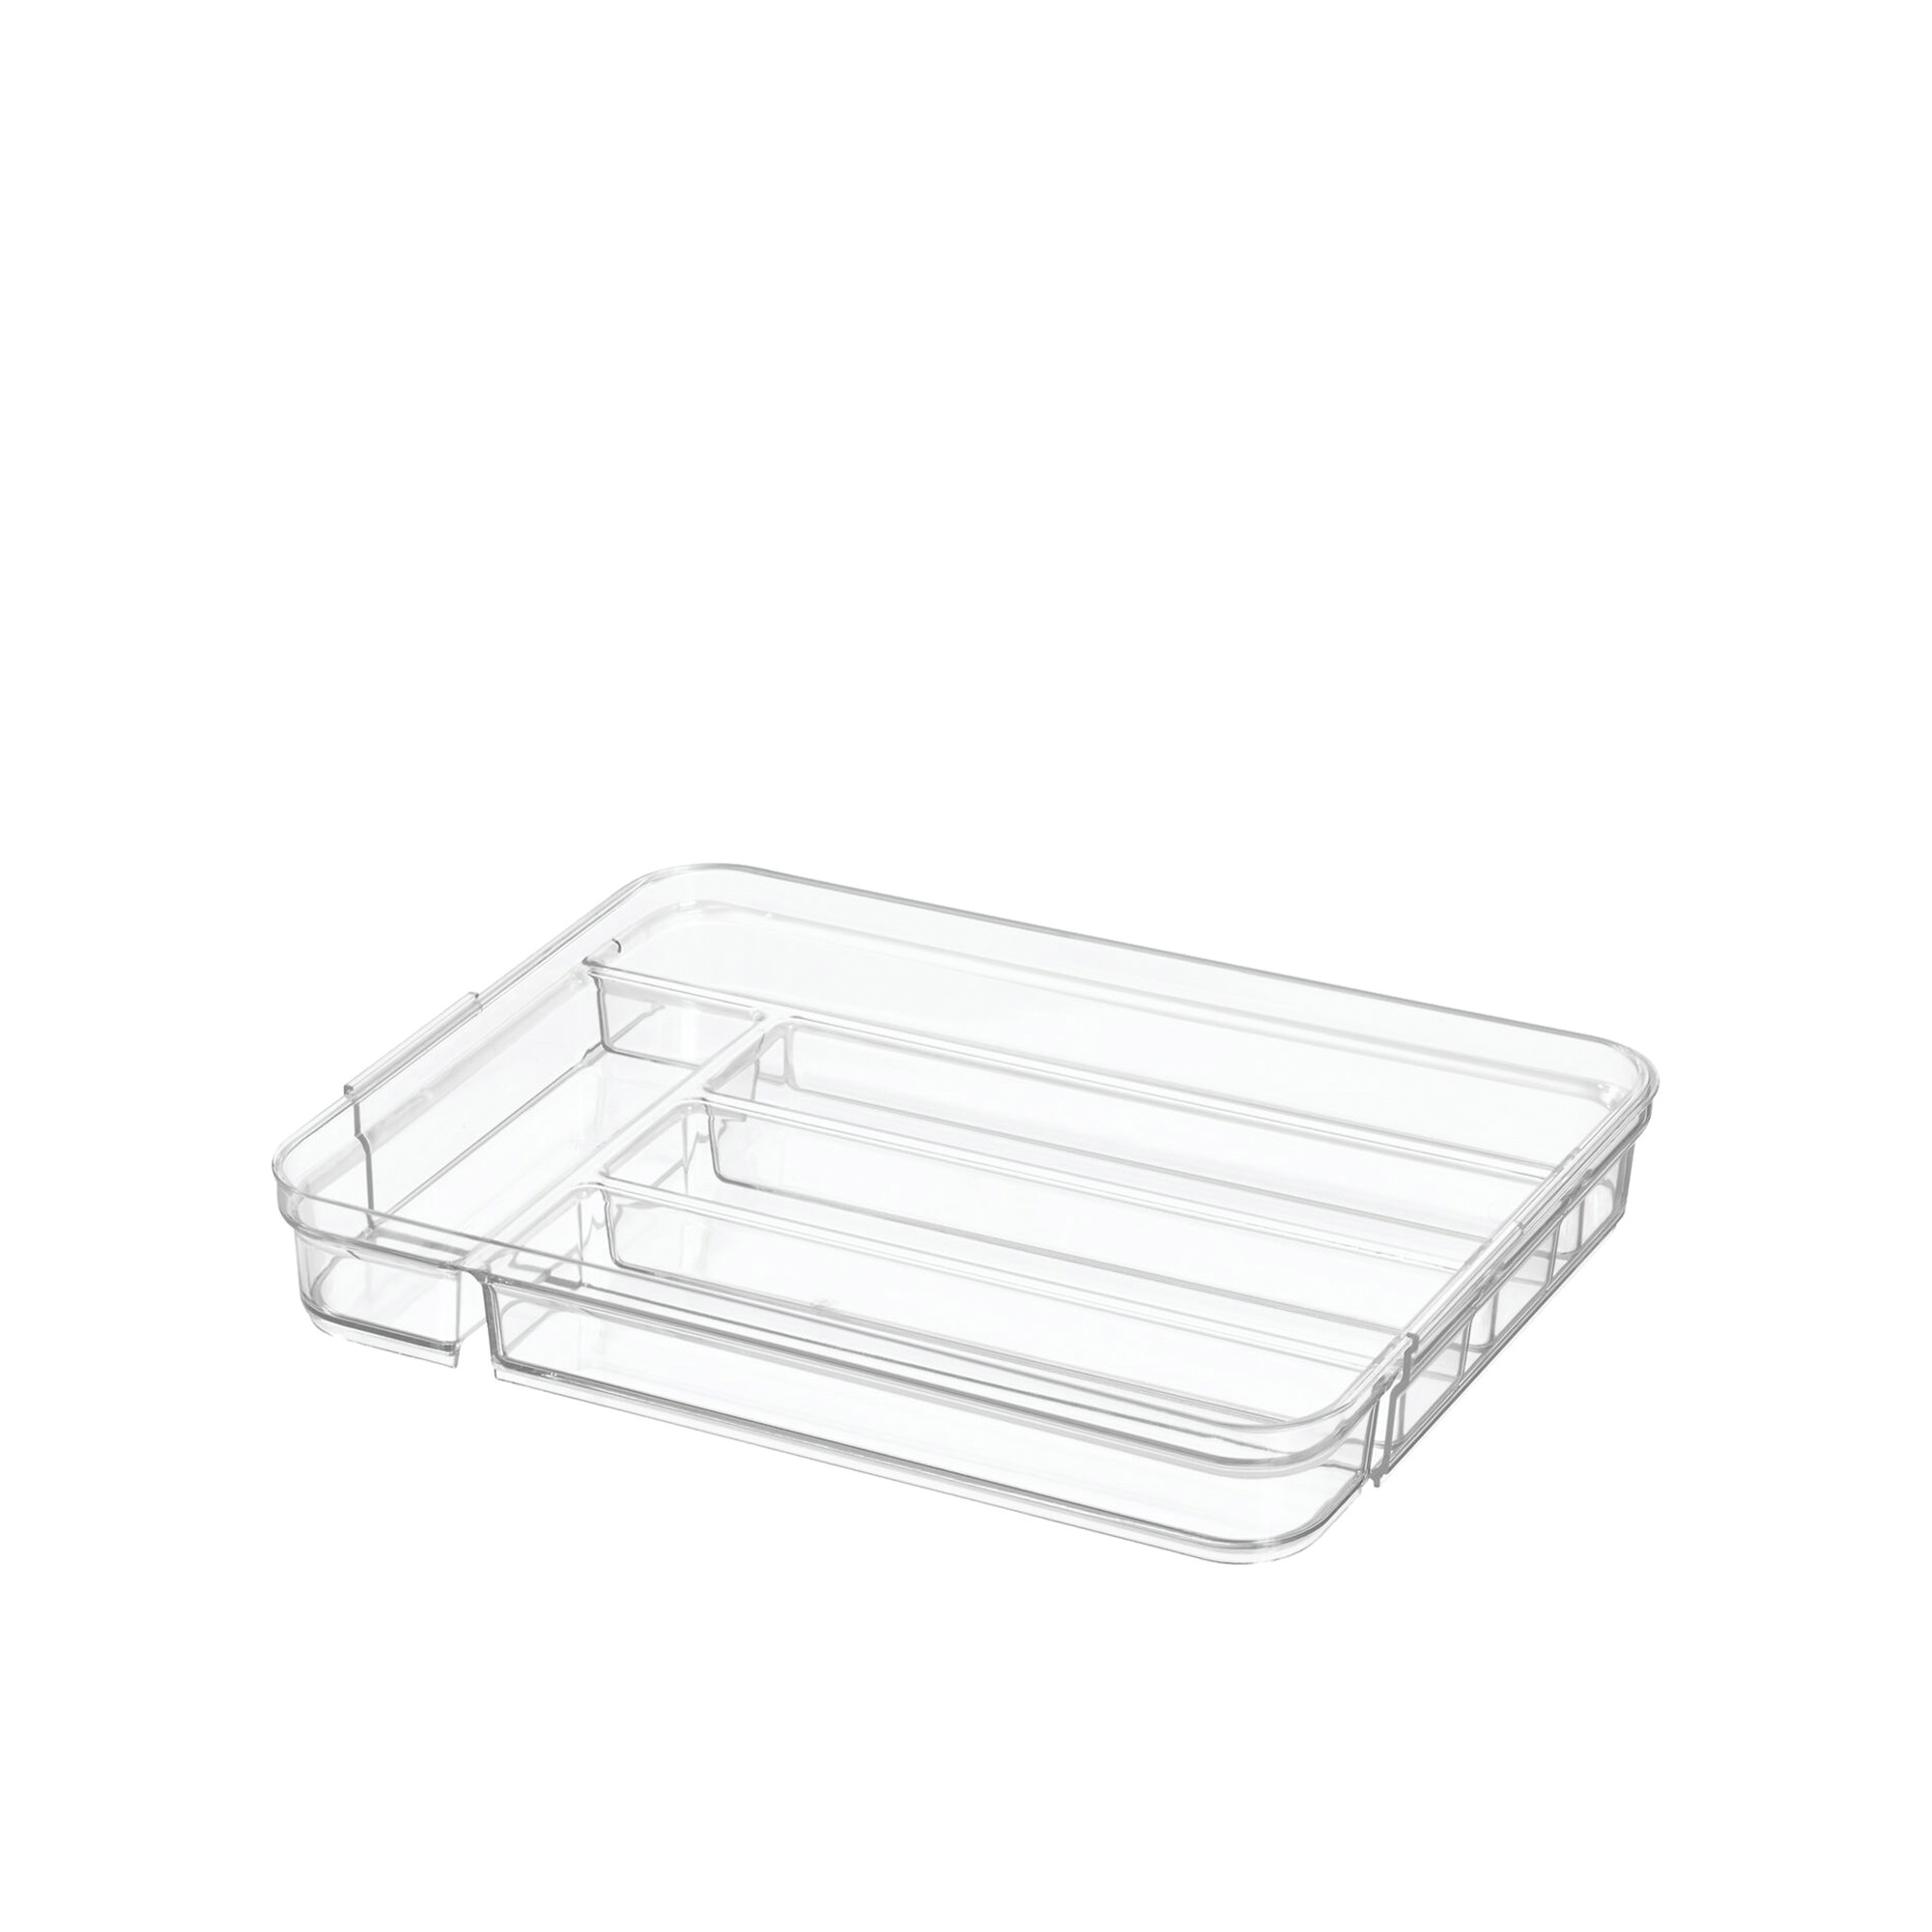 Interdesign Crisp Expandable Cutlery Tray 24.9x36x5cm